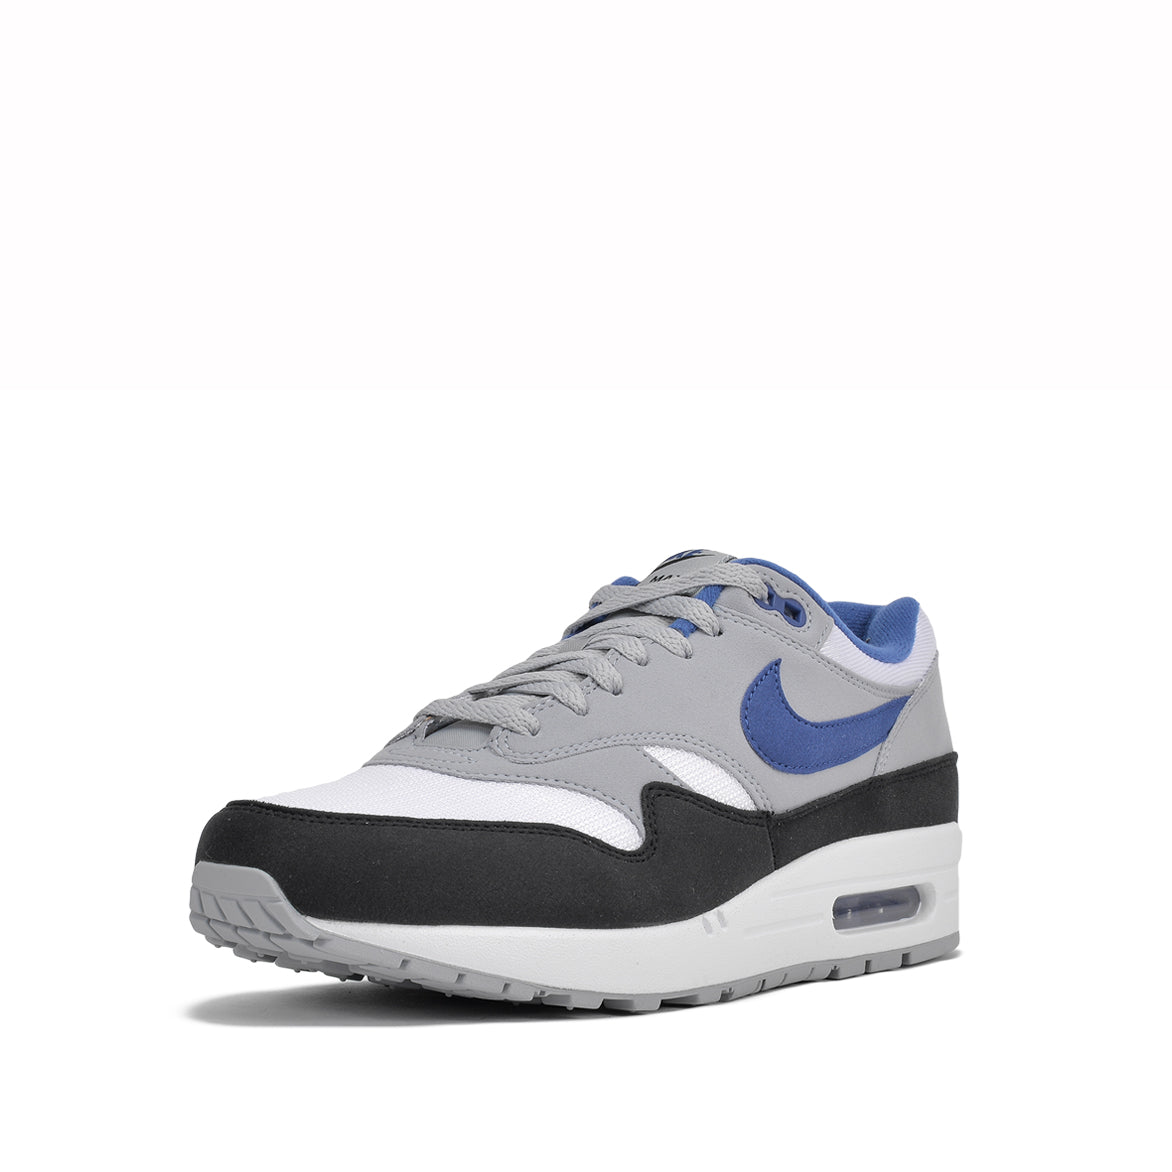 AIR MAX 1 - GYM BLUE / BLACK